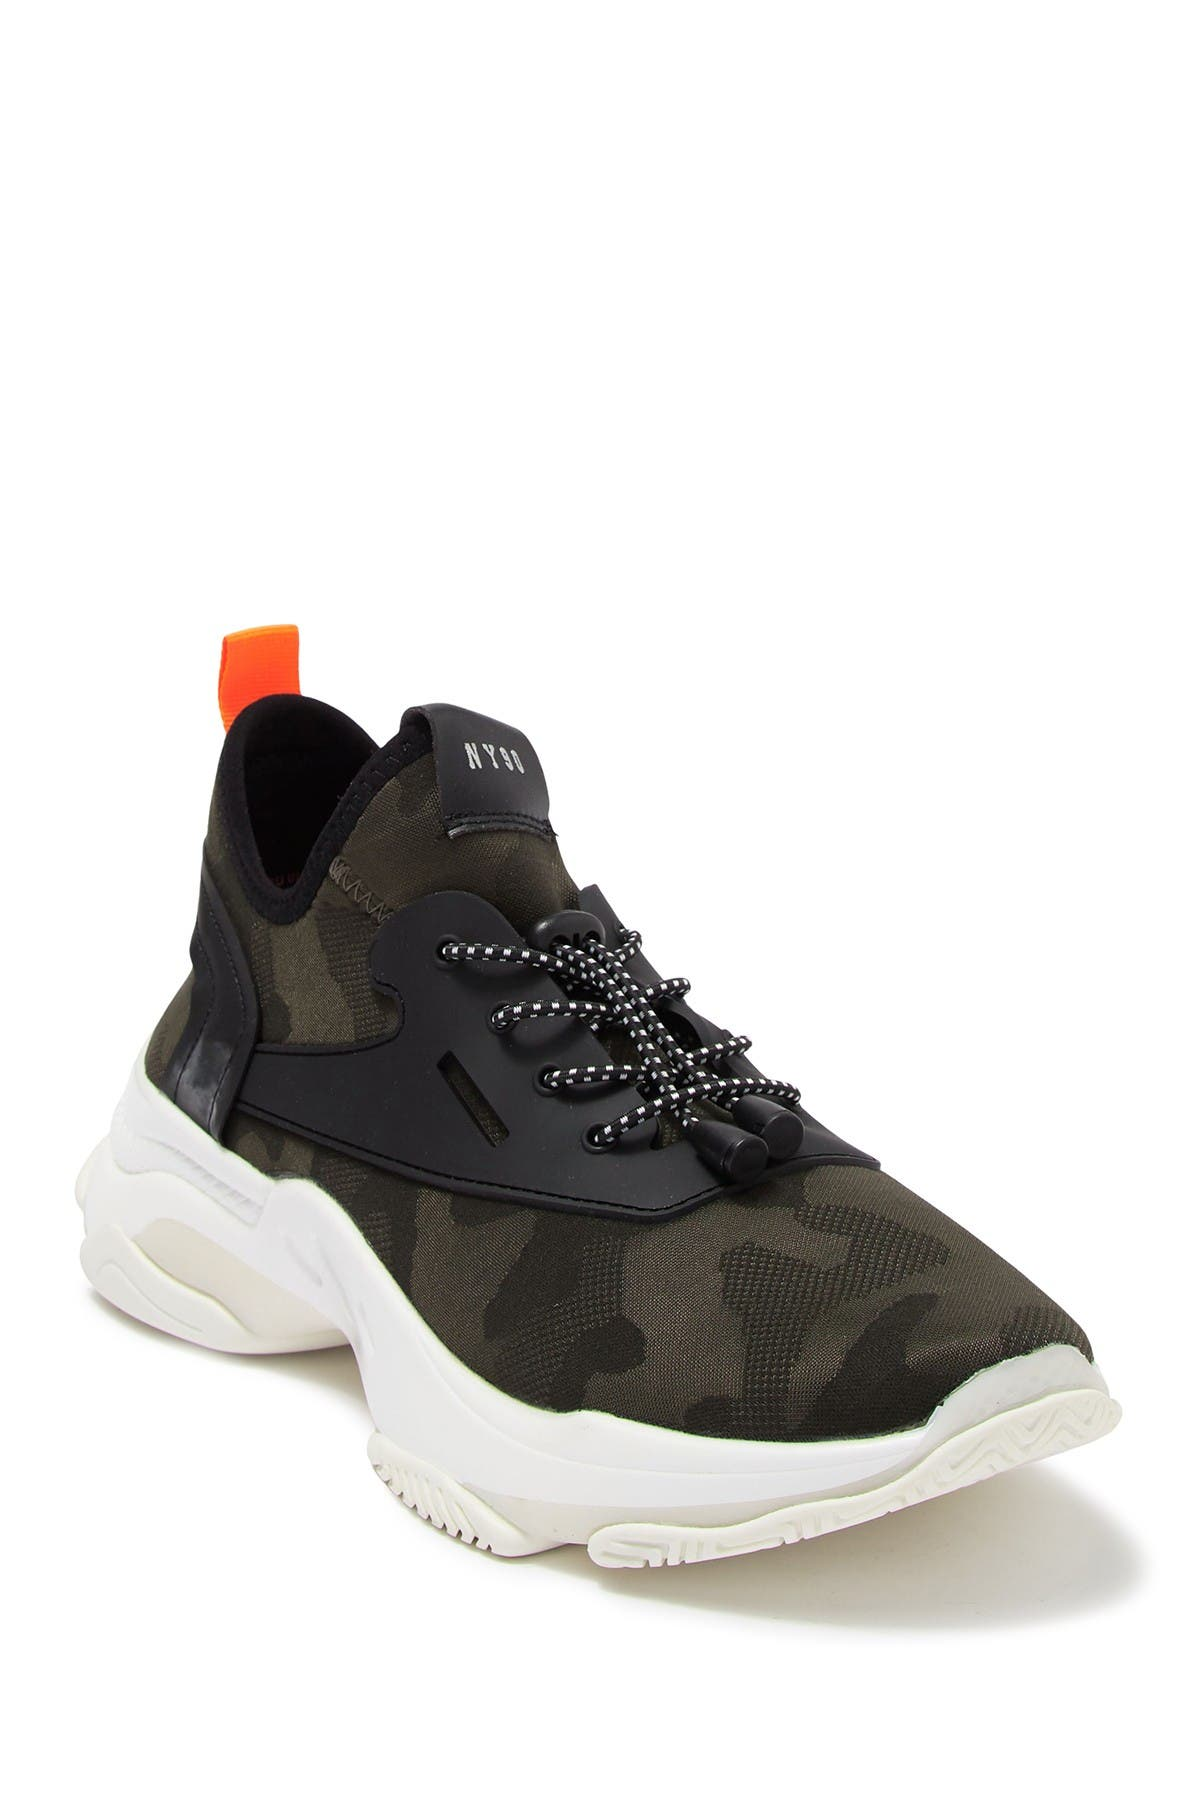 Steve Madden | Isles Lace-Up Sneaker